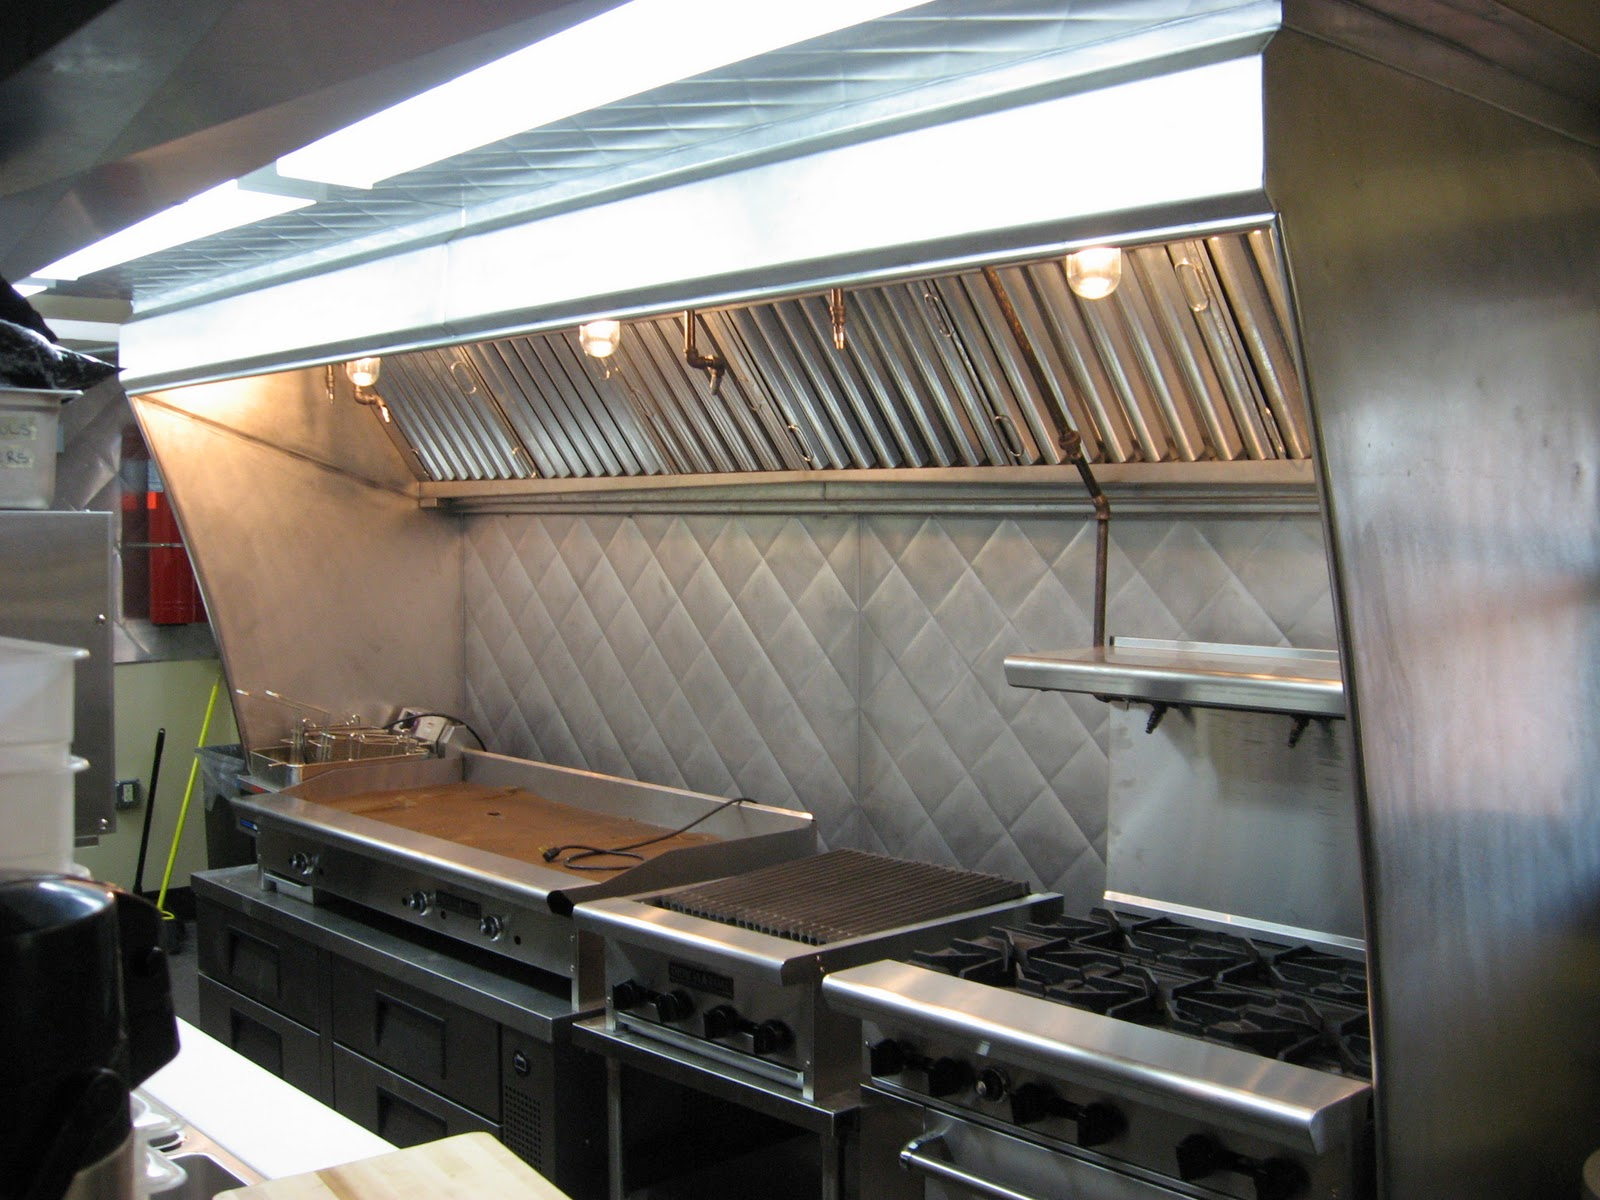 Commercial Kitchen Hood Exhaust Fans All About Fan Wiring Diagram Source Ventilation System Appliances Tips